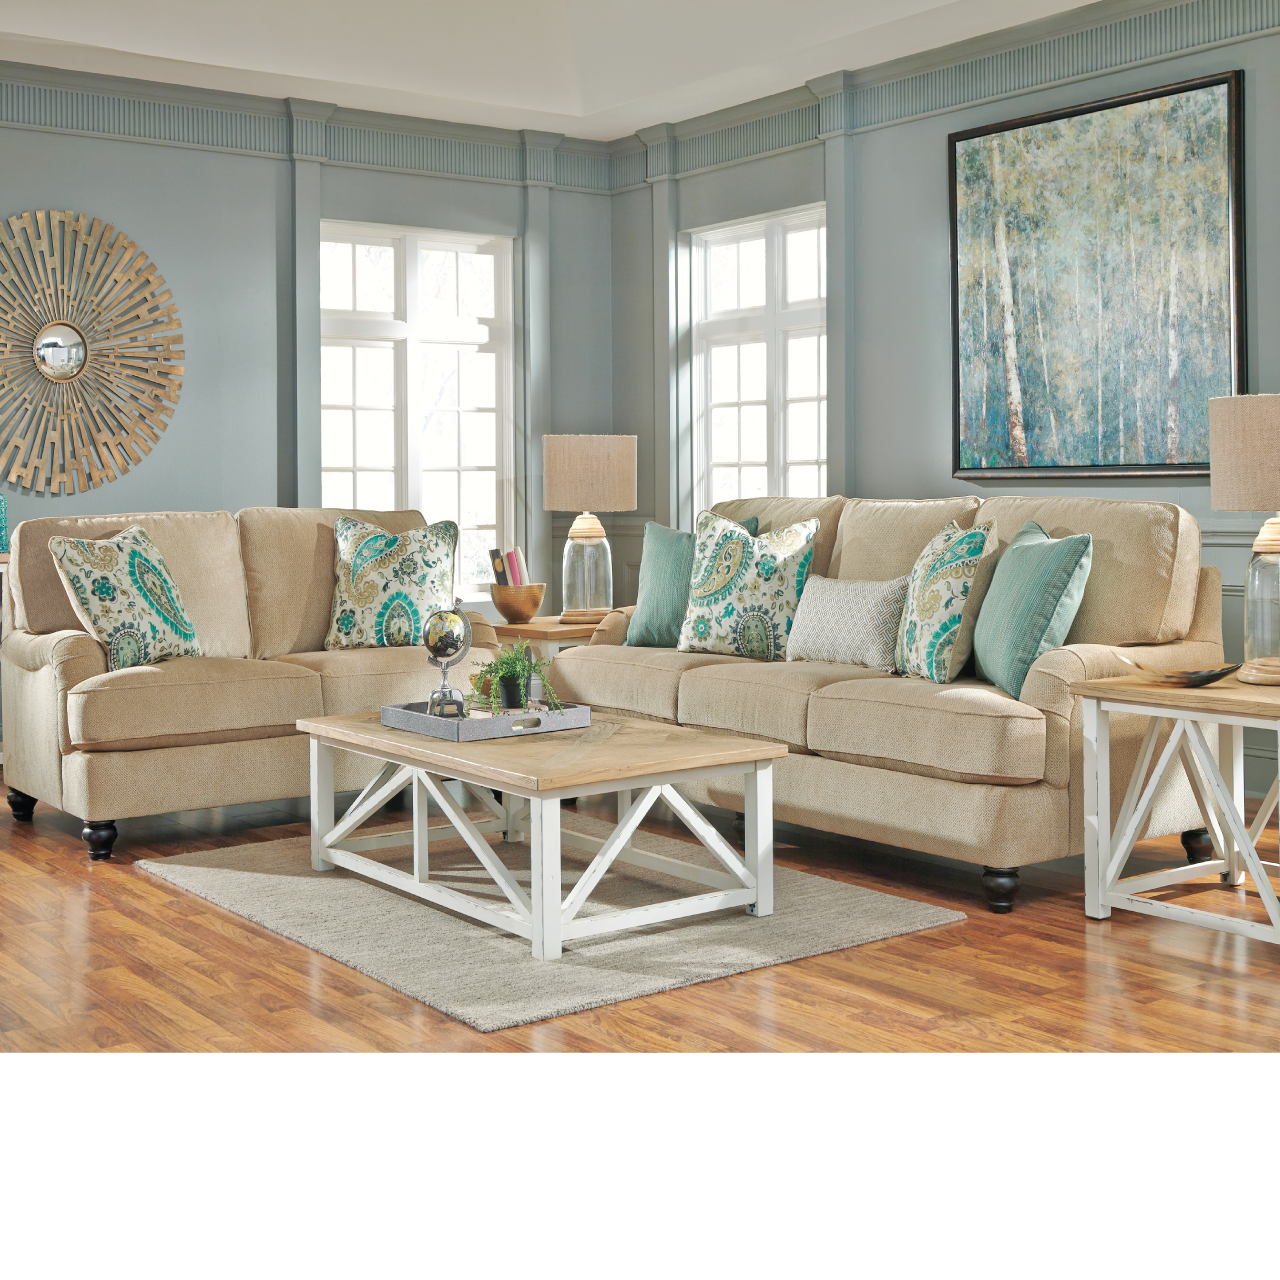 Coastal living room ideas lochian sofa by ashley Coastal living rooms ideas